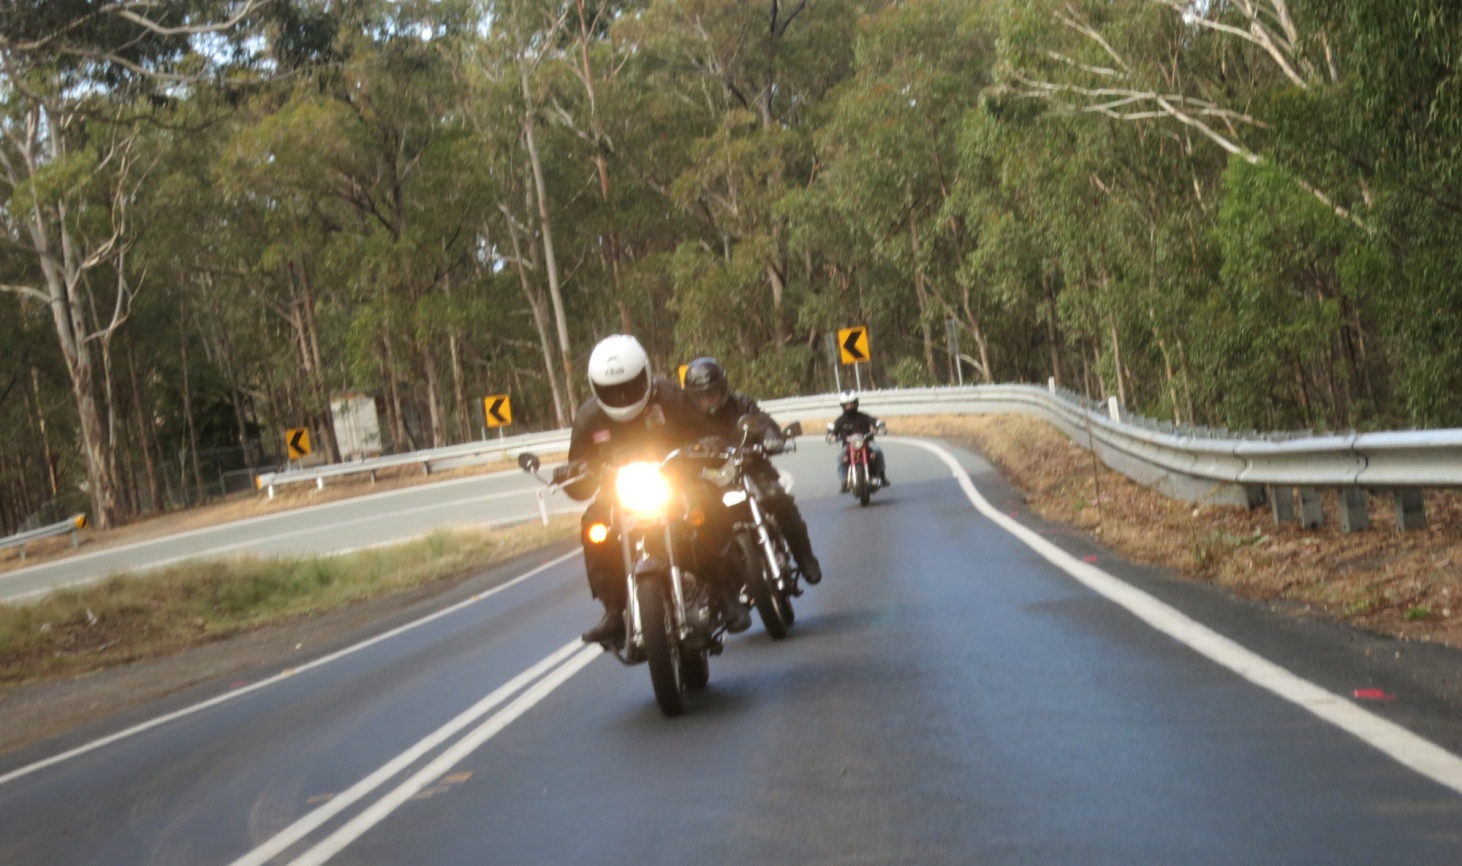 N:\My Data\Clubs\RECOAINC\Trip Reports\2018 06 08 Winter Rally Tathra\Photos\IMG_2914 craig on tank.jpg